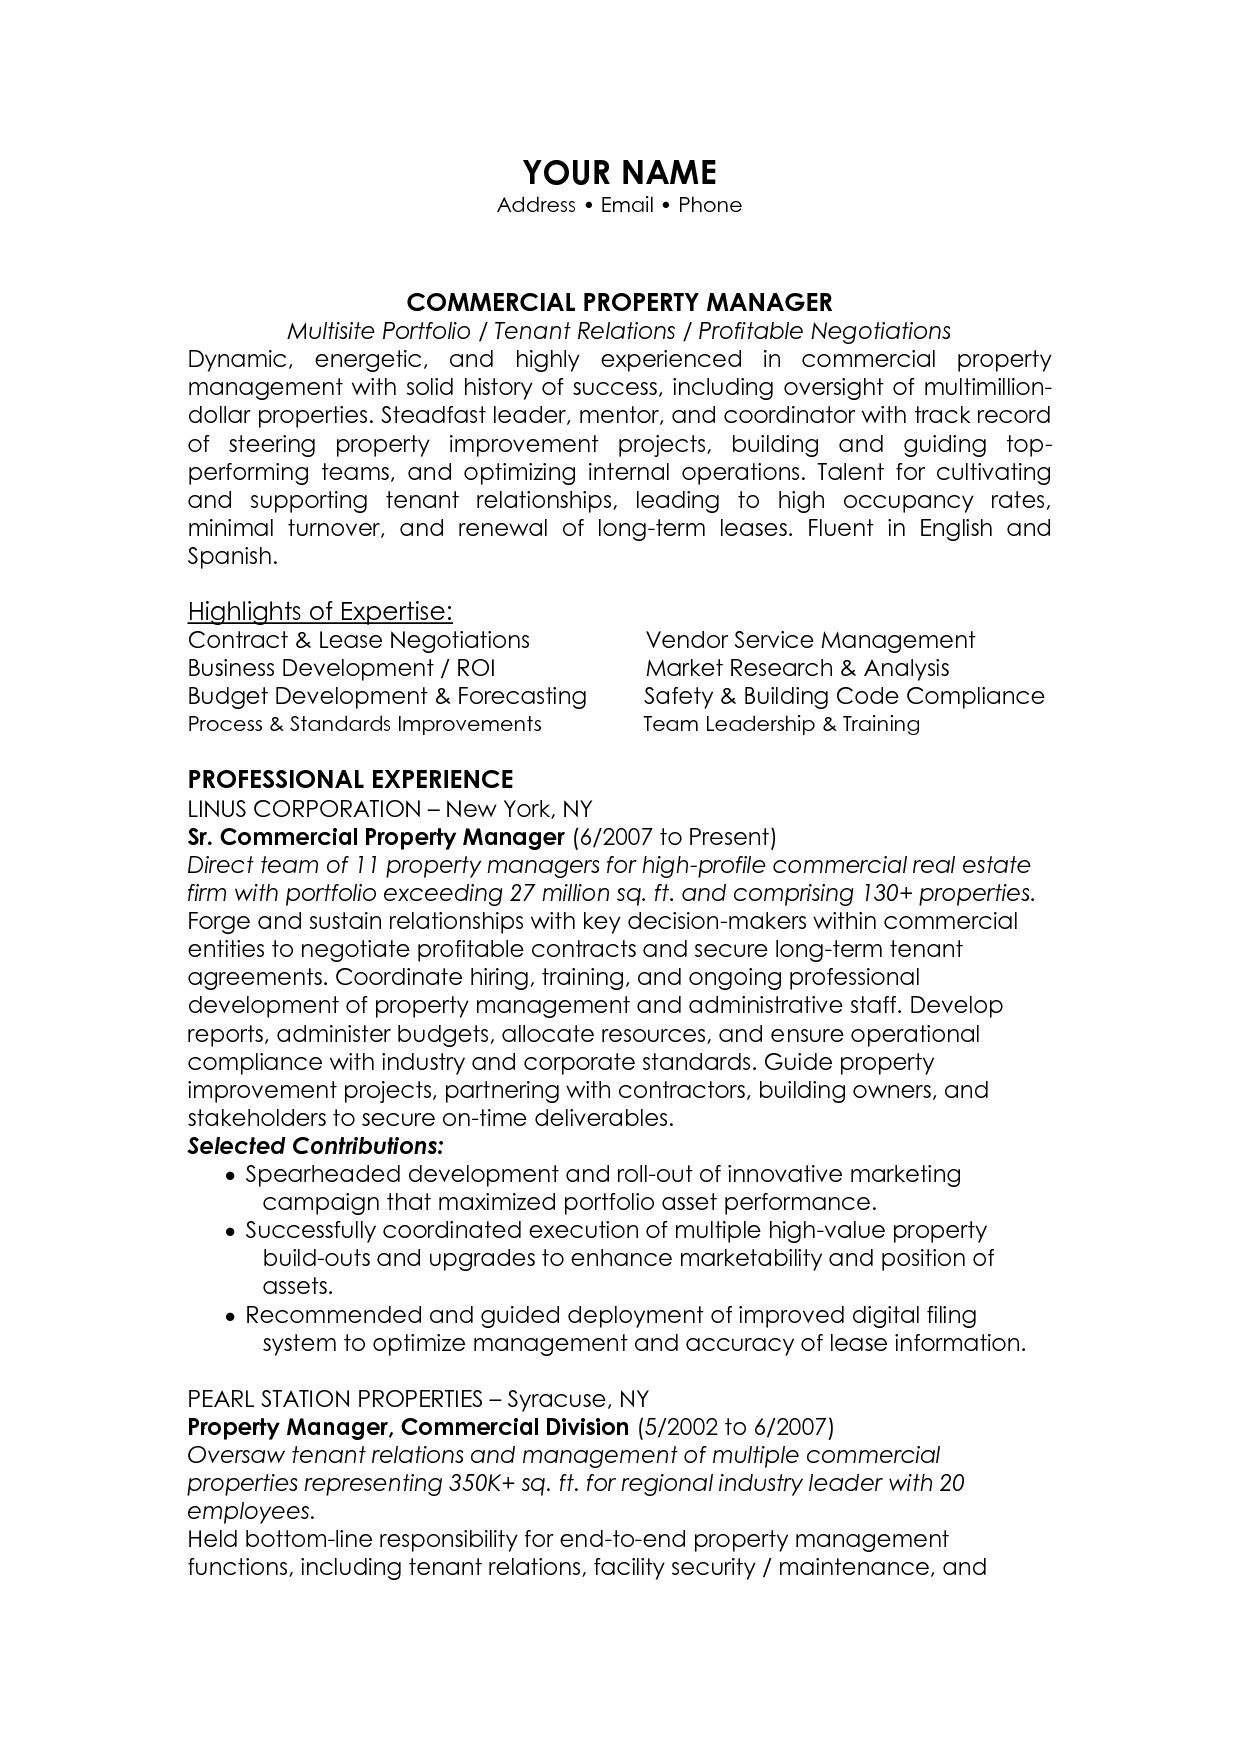 Property Management Resume Interpersonal Relationships Essayuse The Following To Cite This